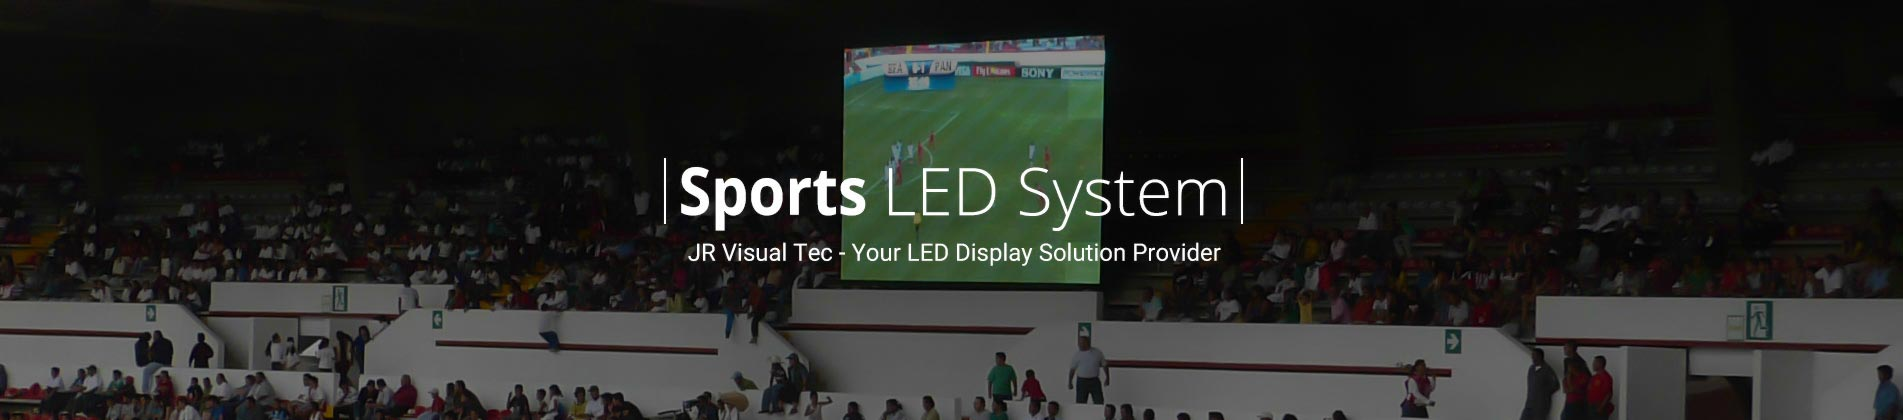 sports led system